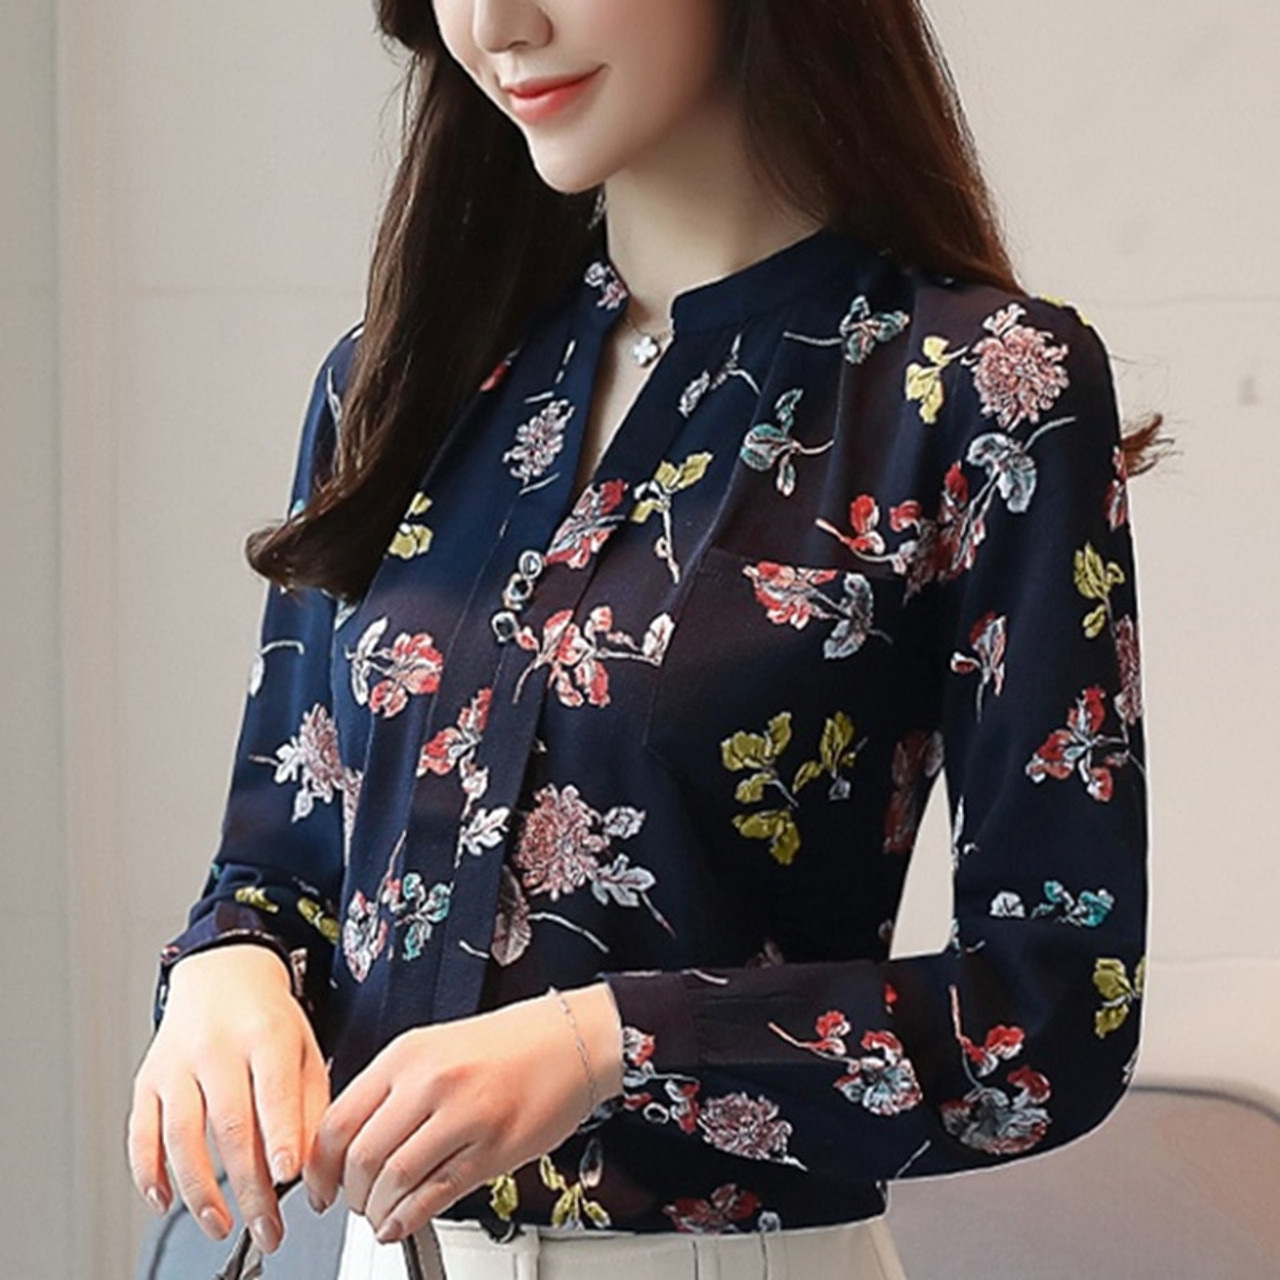 62cc07784ca 2018 Womens Tops And Blouses Autumn Fashion V-Neck Chiffon Blouses Slim  Women Chiffon Blouse Office Work Wear Shirts Women Tops